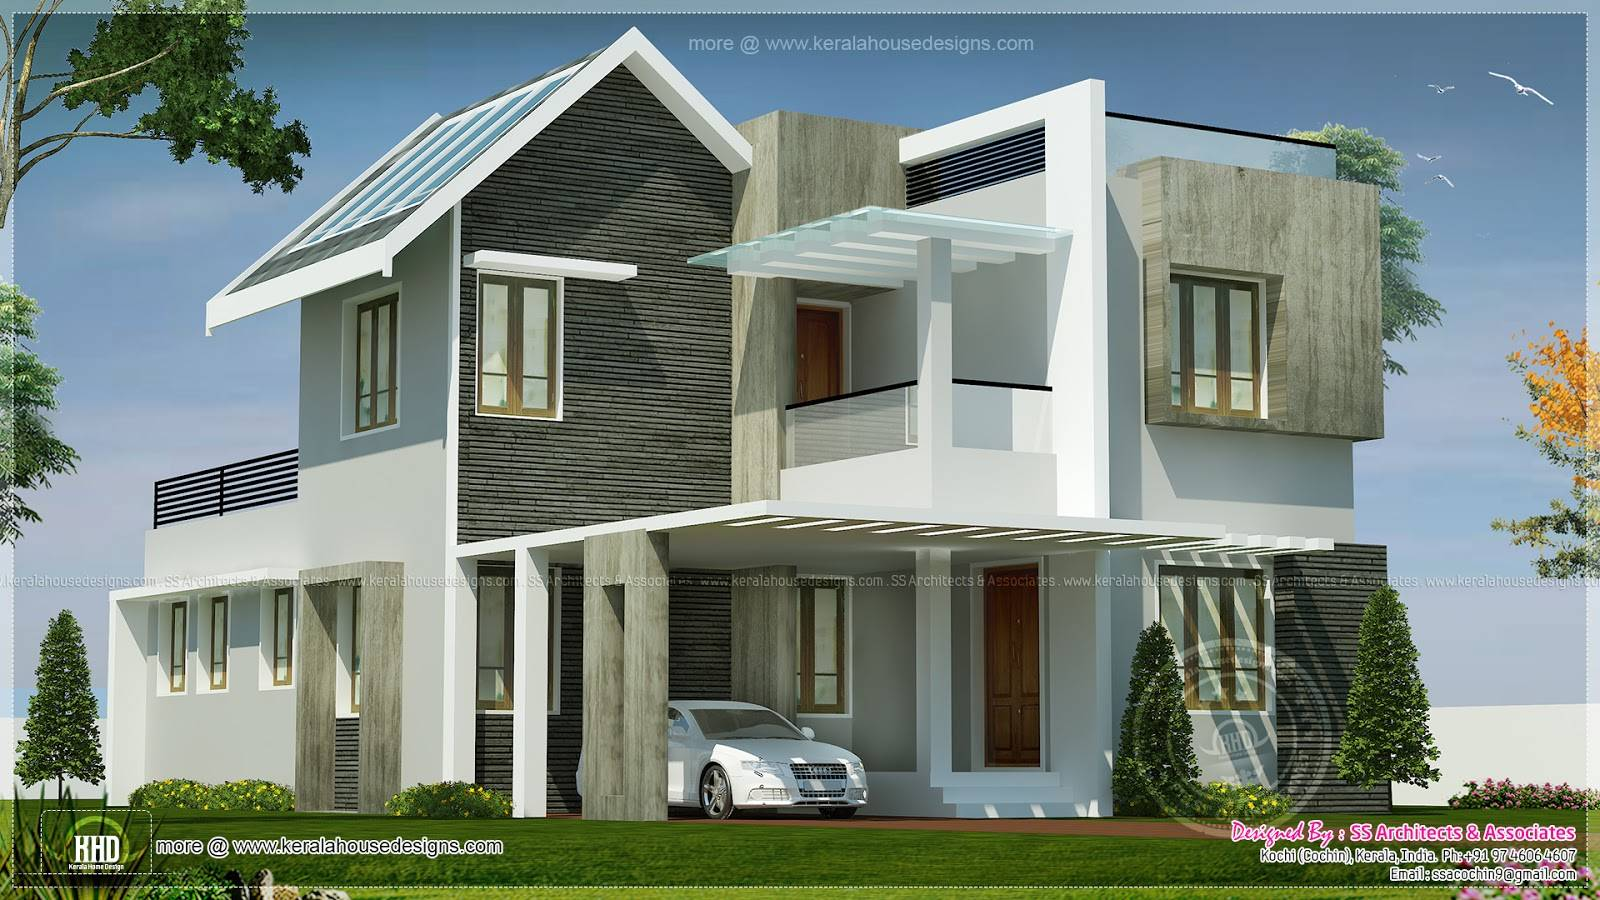 Double Storey House Plans Simple Story House Plans Storey Floor. Modern house plans double story